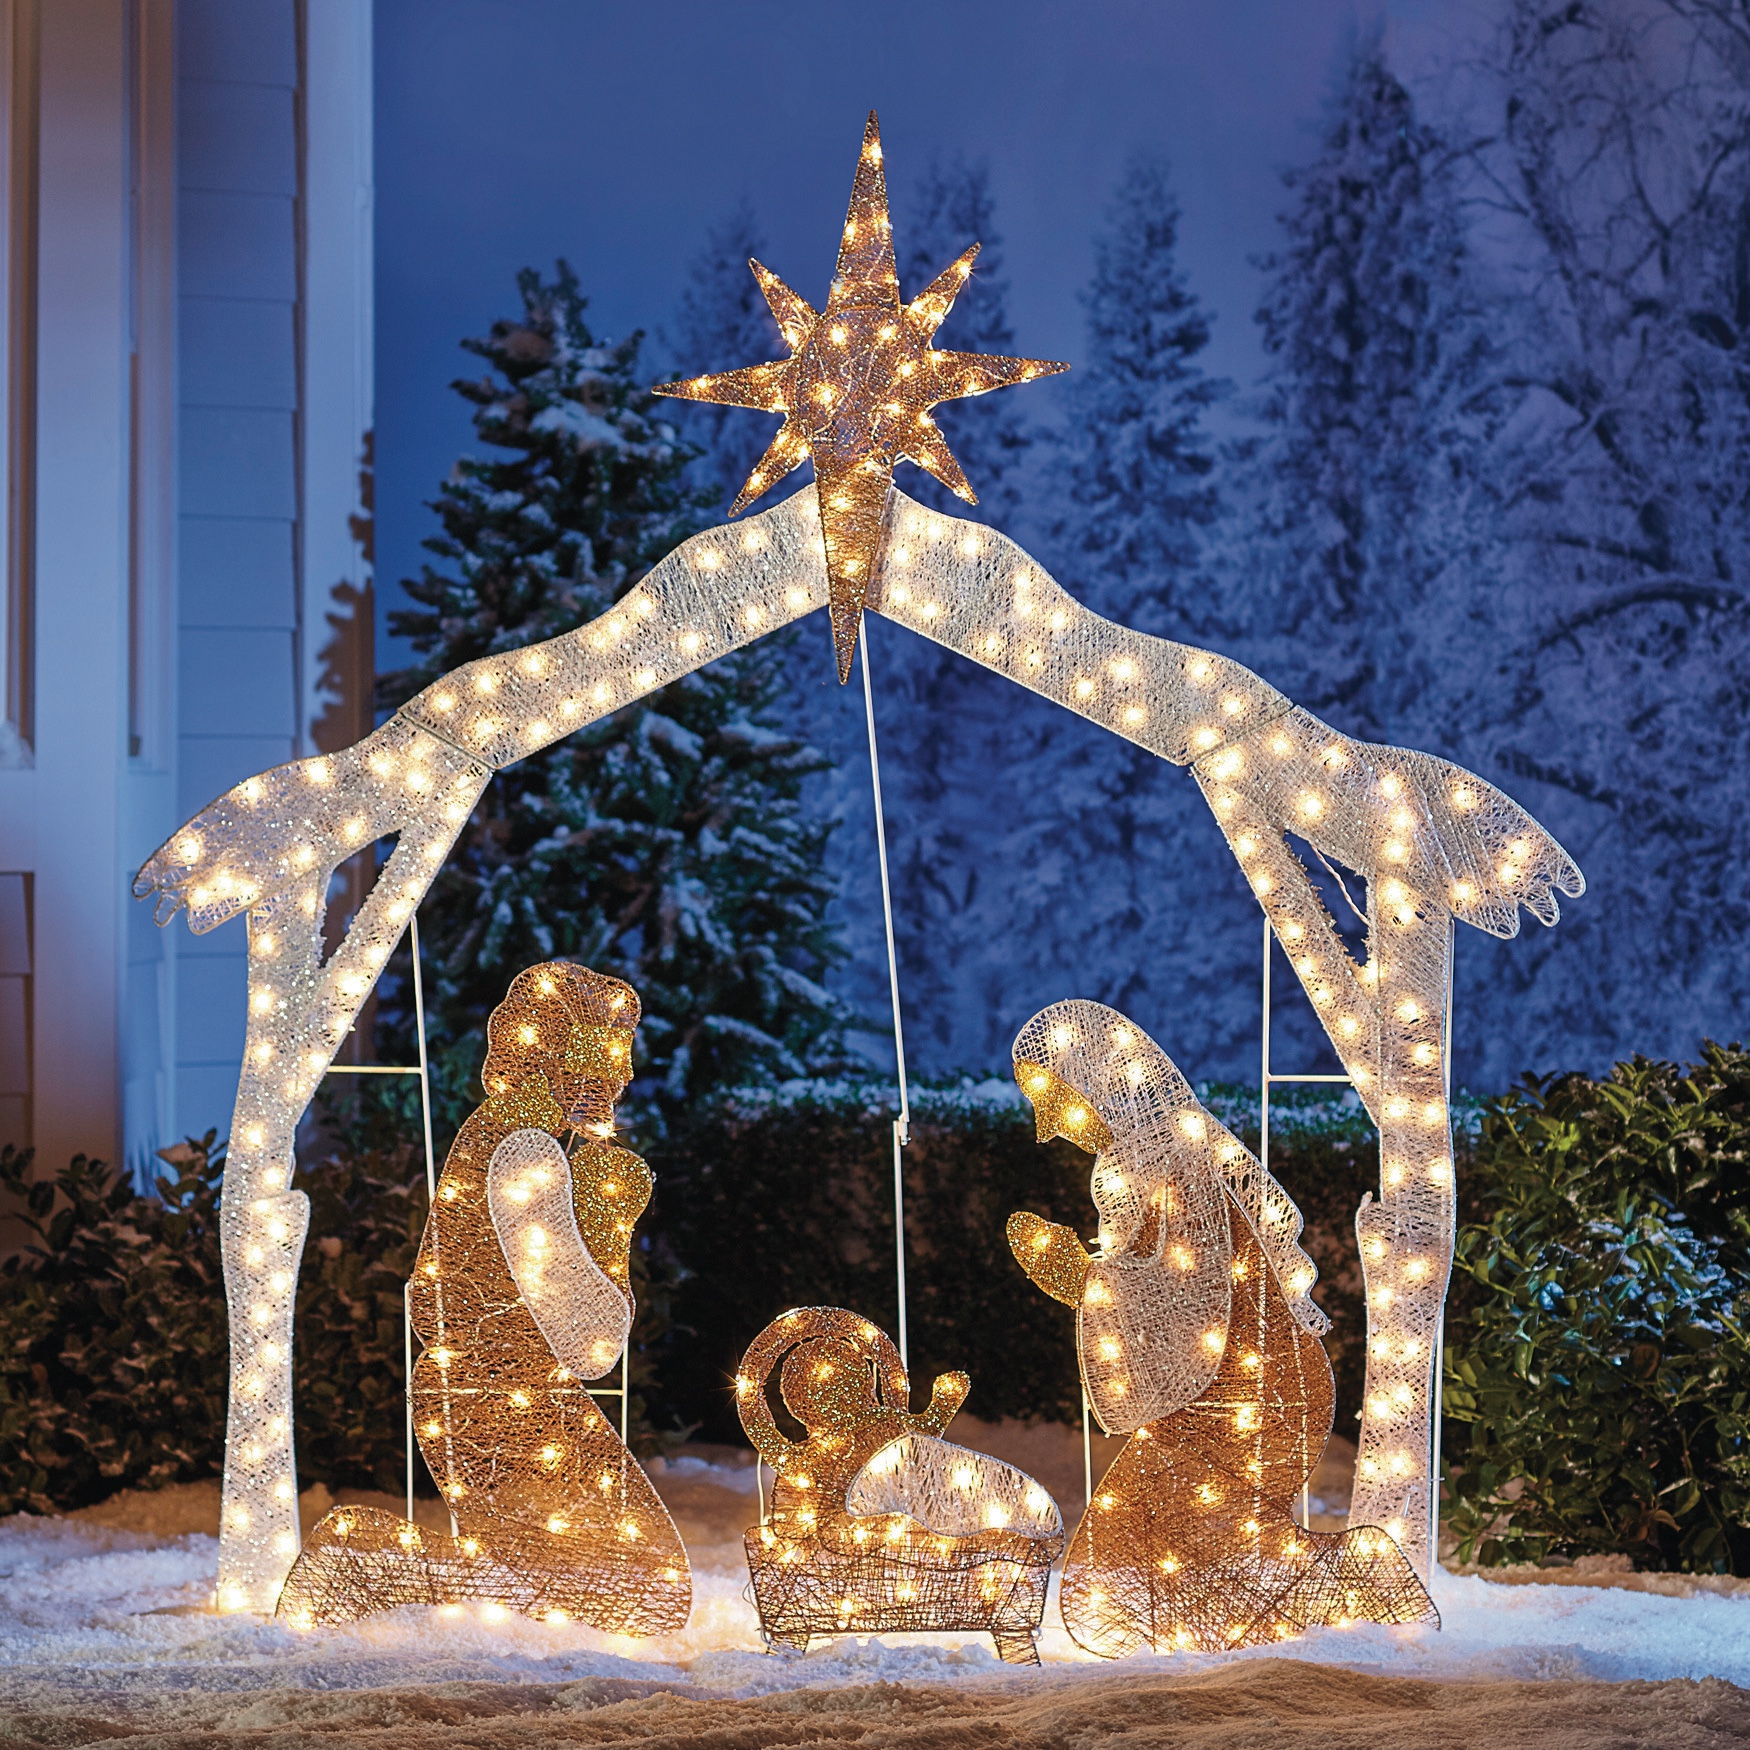 crystal splendor outdoor nativity scene white - Nativity Outdoor Christmas Decorations